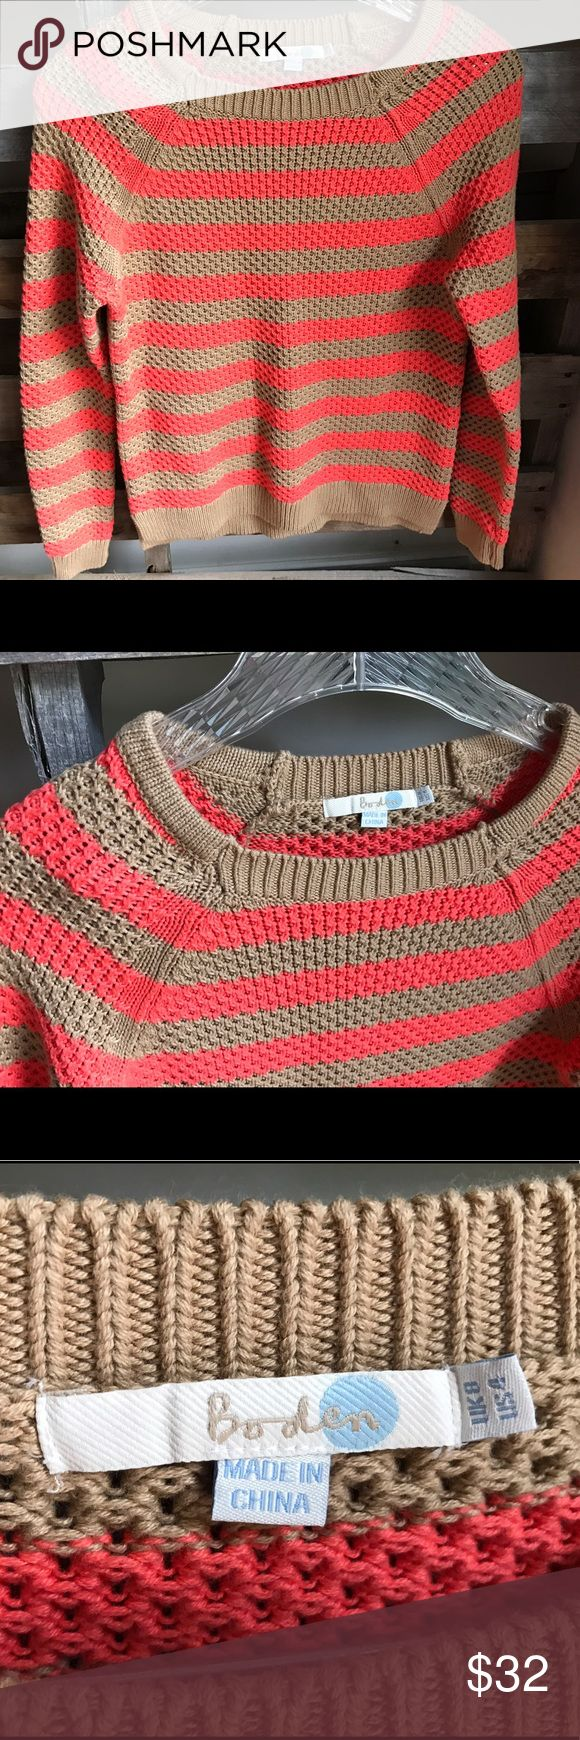 Boden sailor striped sweater size 4 EUC Perfect condition. Smoke and pet free home. Bundle discount 20% Boden Sweaters Crew & Scoop Necks